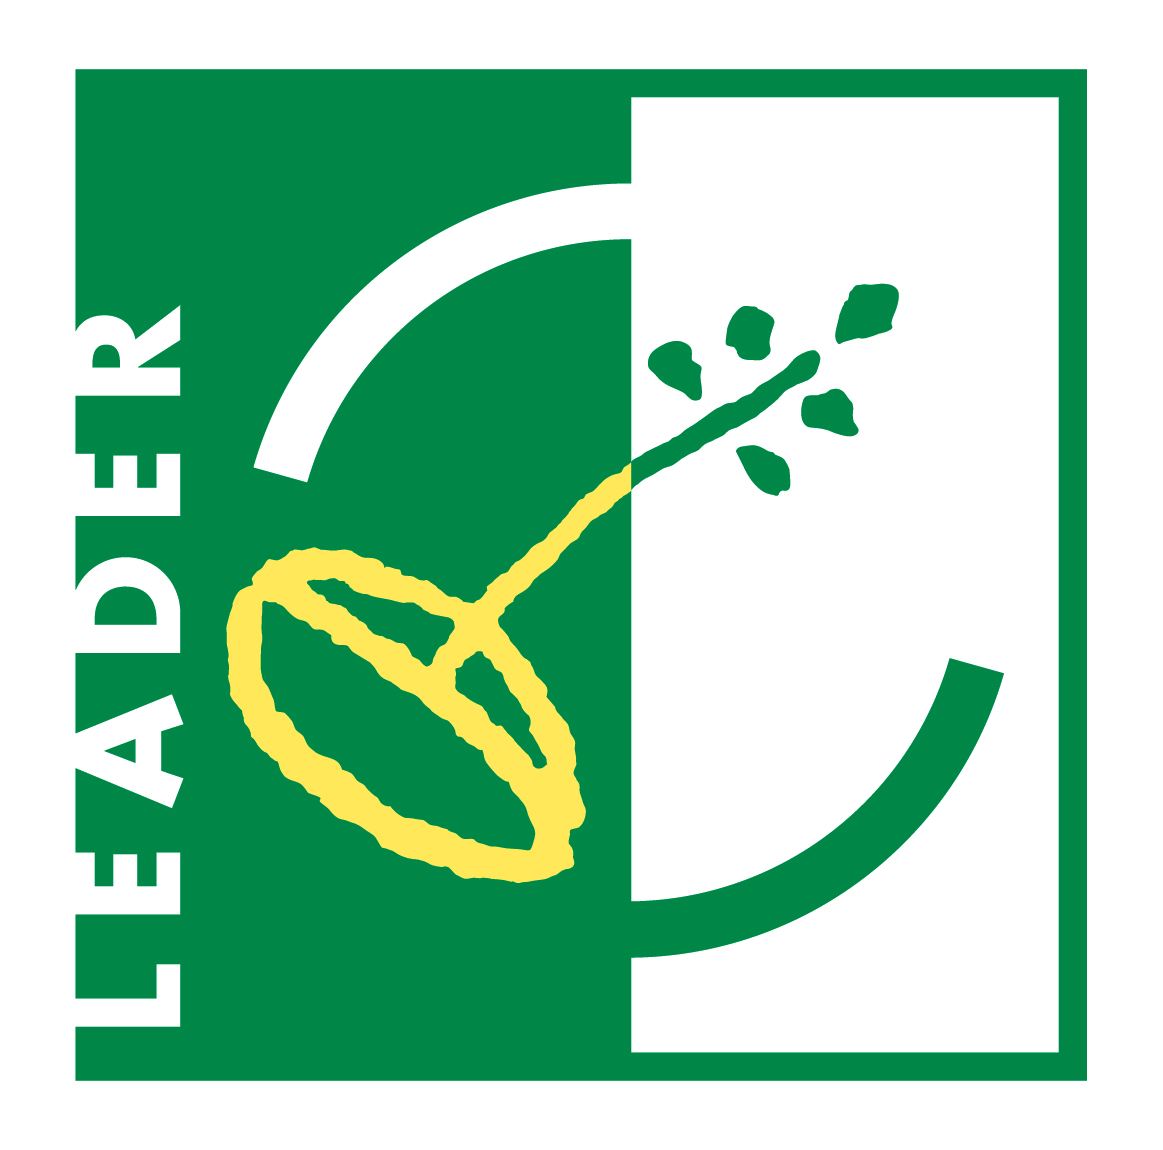 leader hdprint 01 copie